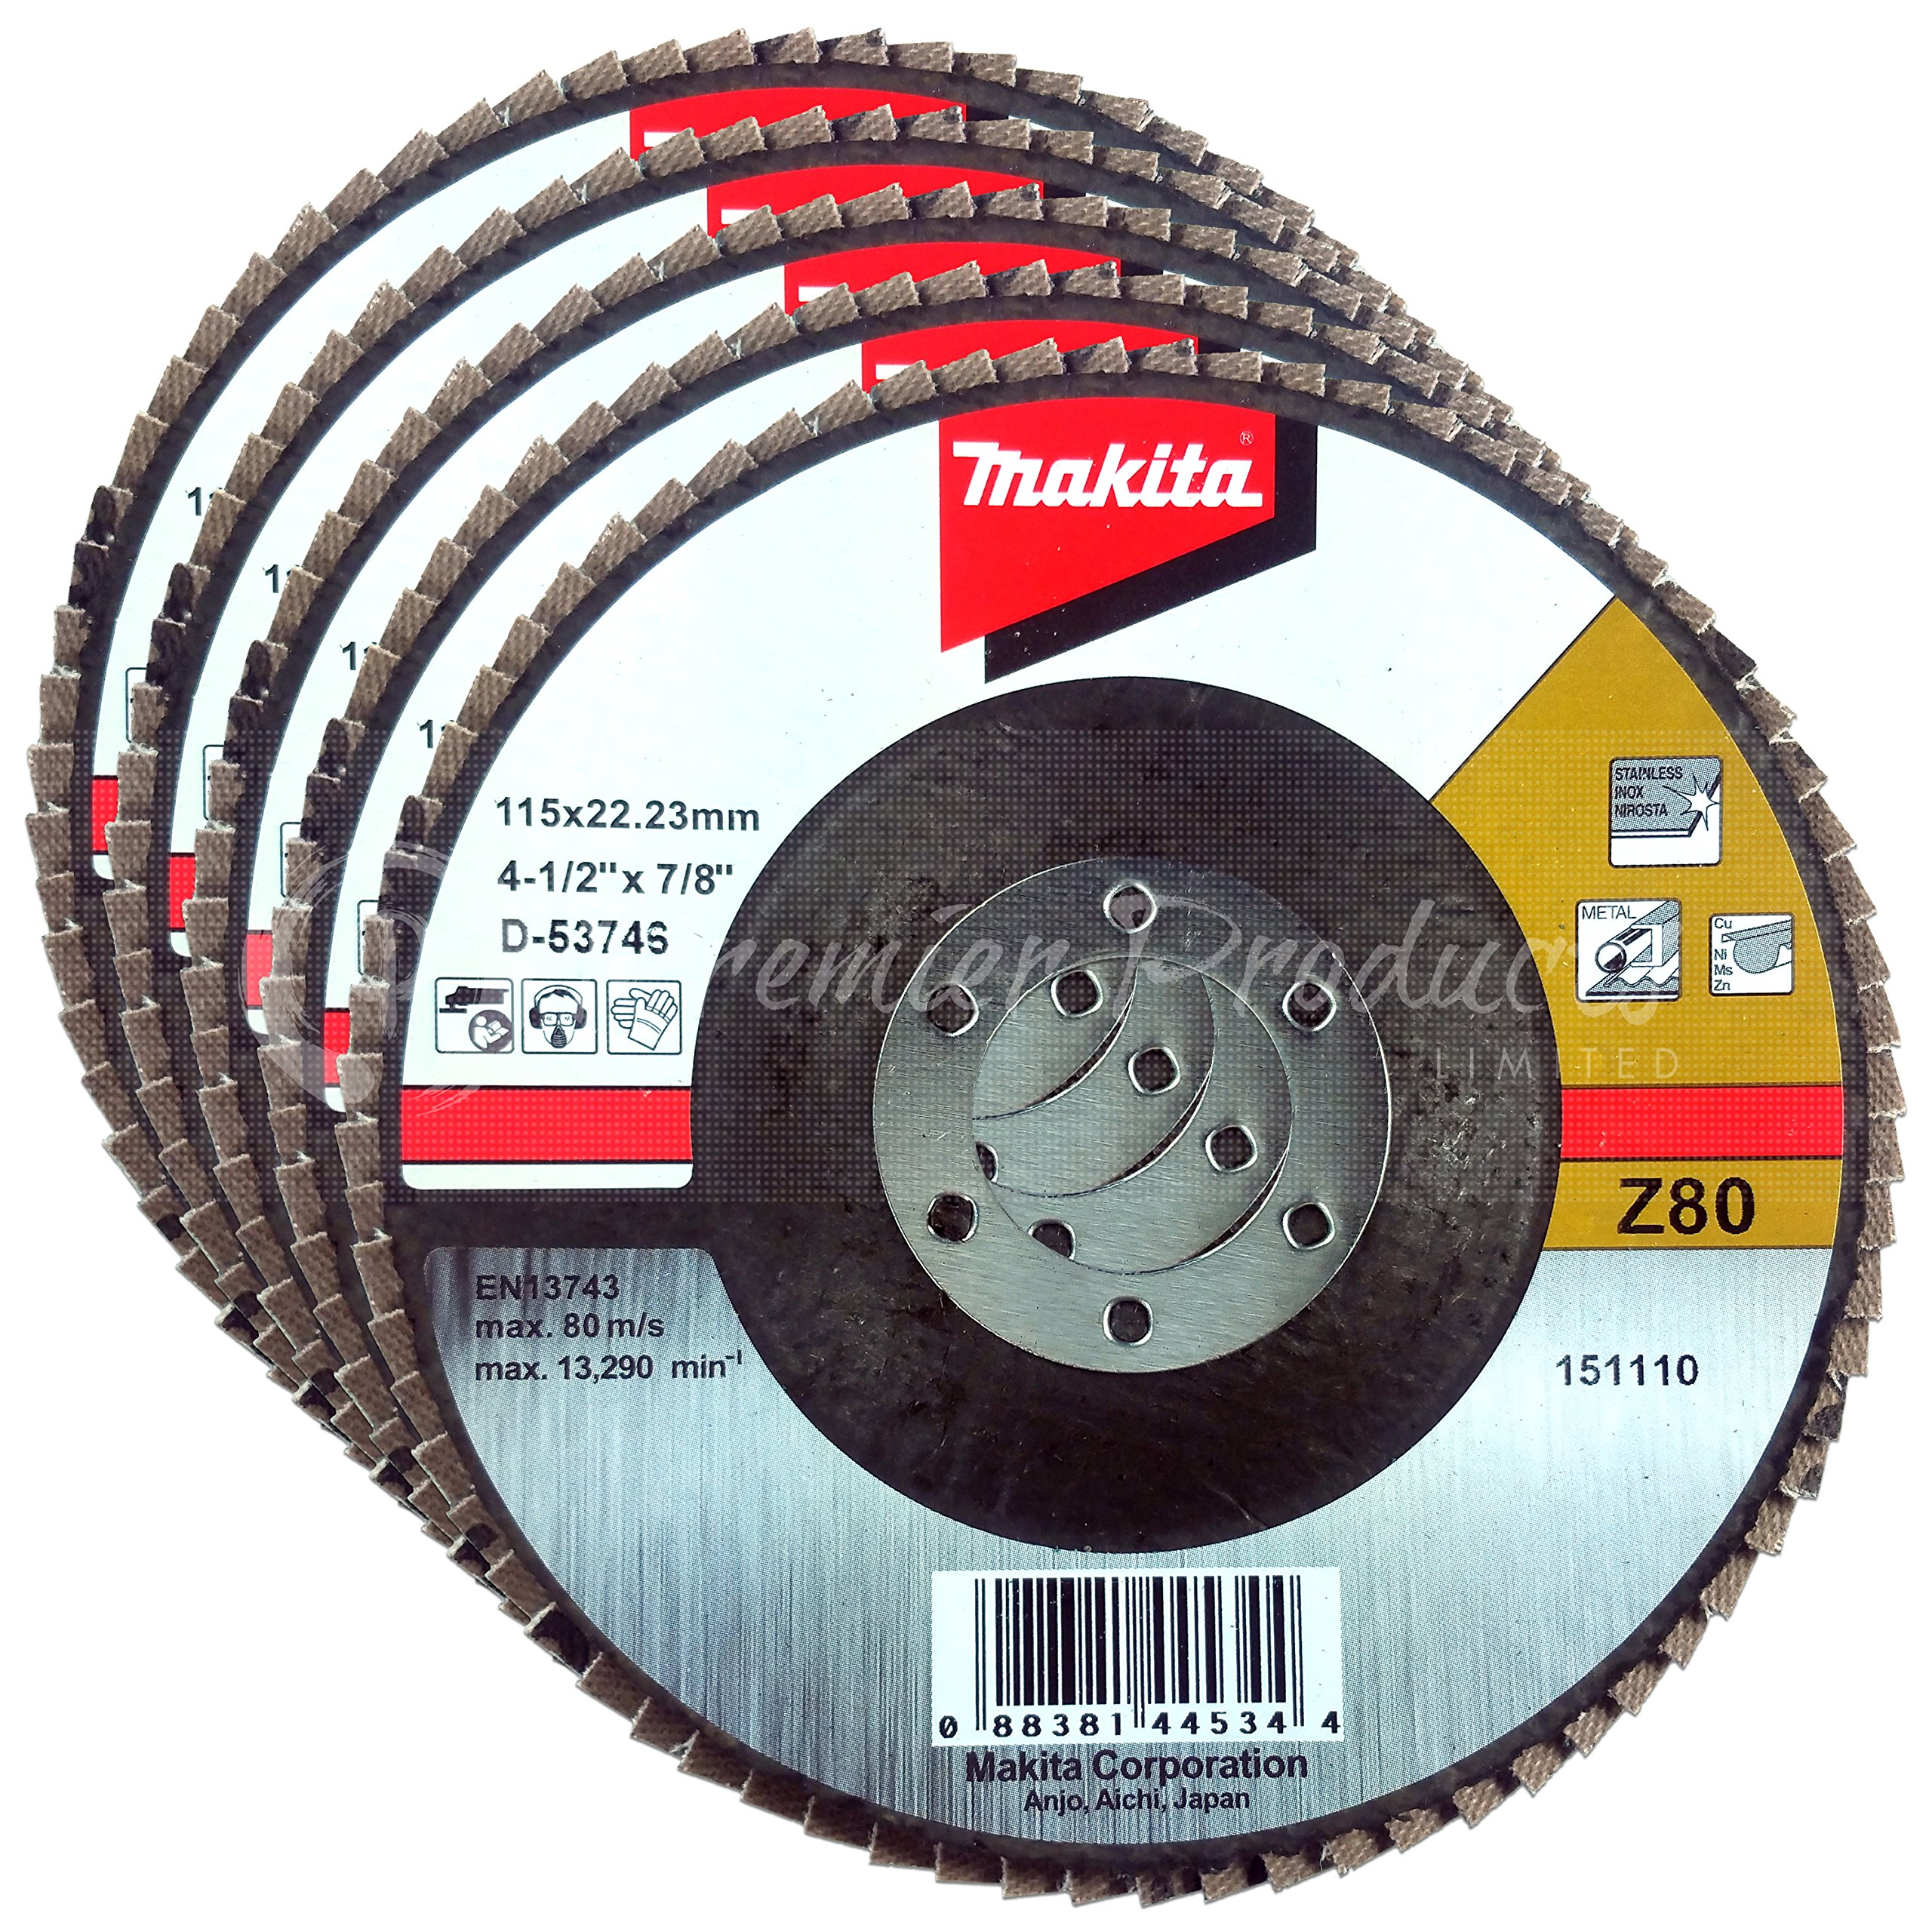 Makita 5 Pack - 80 Grit Flap Disc For Grinders - Balanced Conditioning For Metal, Stainless Steel & Non-Ferrous - 4-1/2'' x 7/8-Inch | Z80 Angled